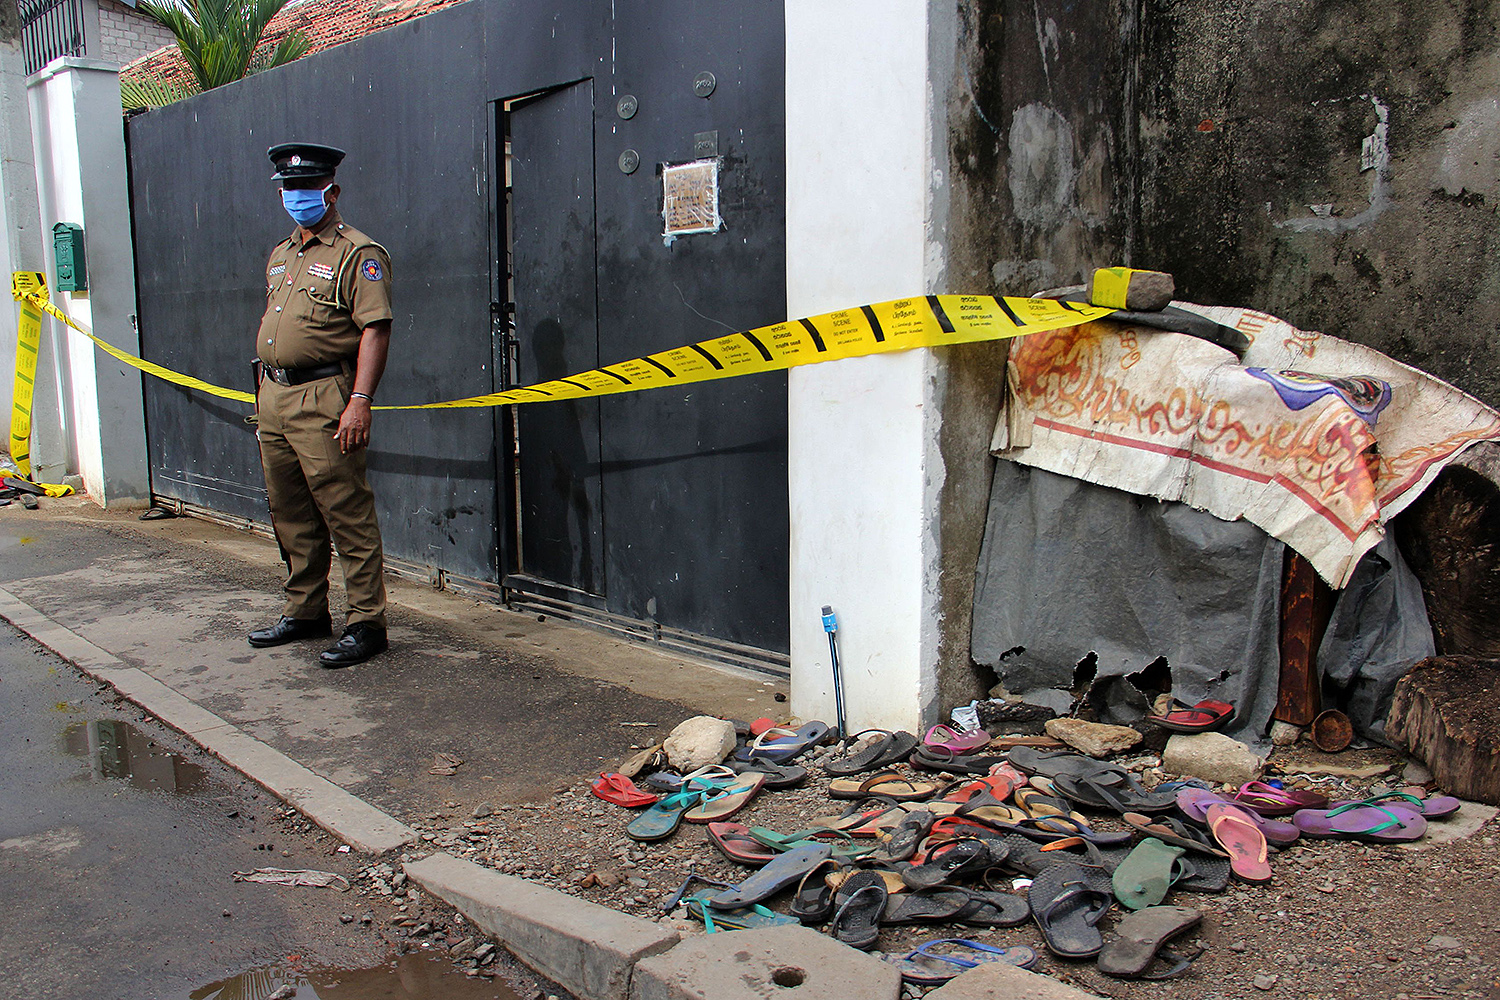 A policeman stands guard outside a warehouse in Colombo, Sri Lanka, on May 21 after three women were crushed to death during a cash distribution for residents affected by the coronavirus lockdown. STR/AFP via Getty Images